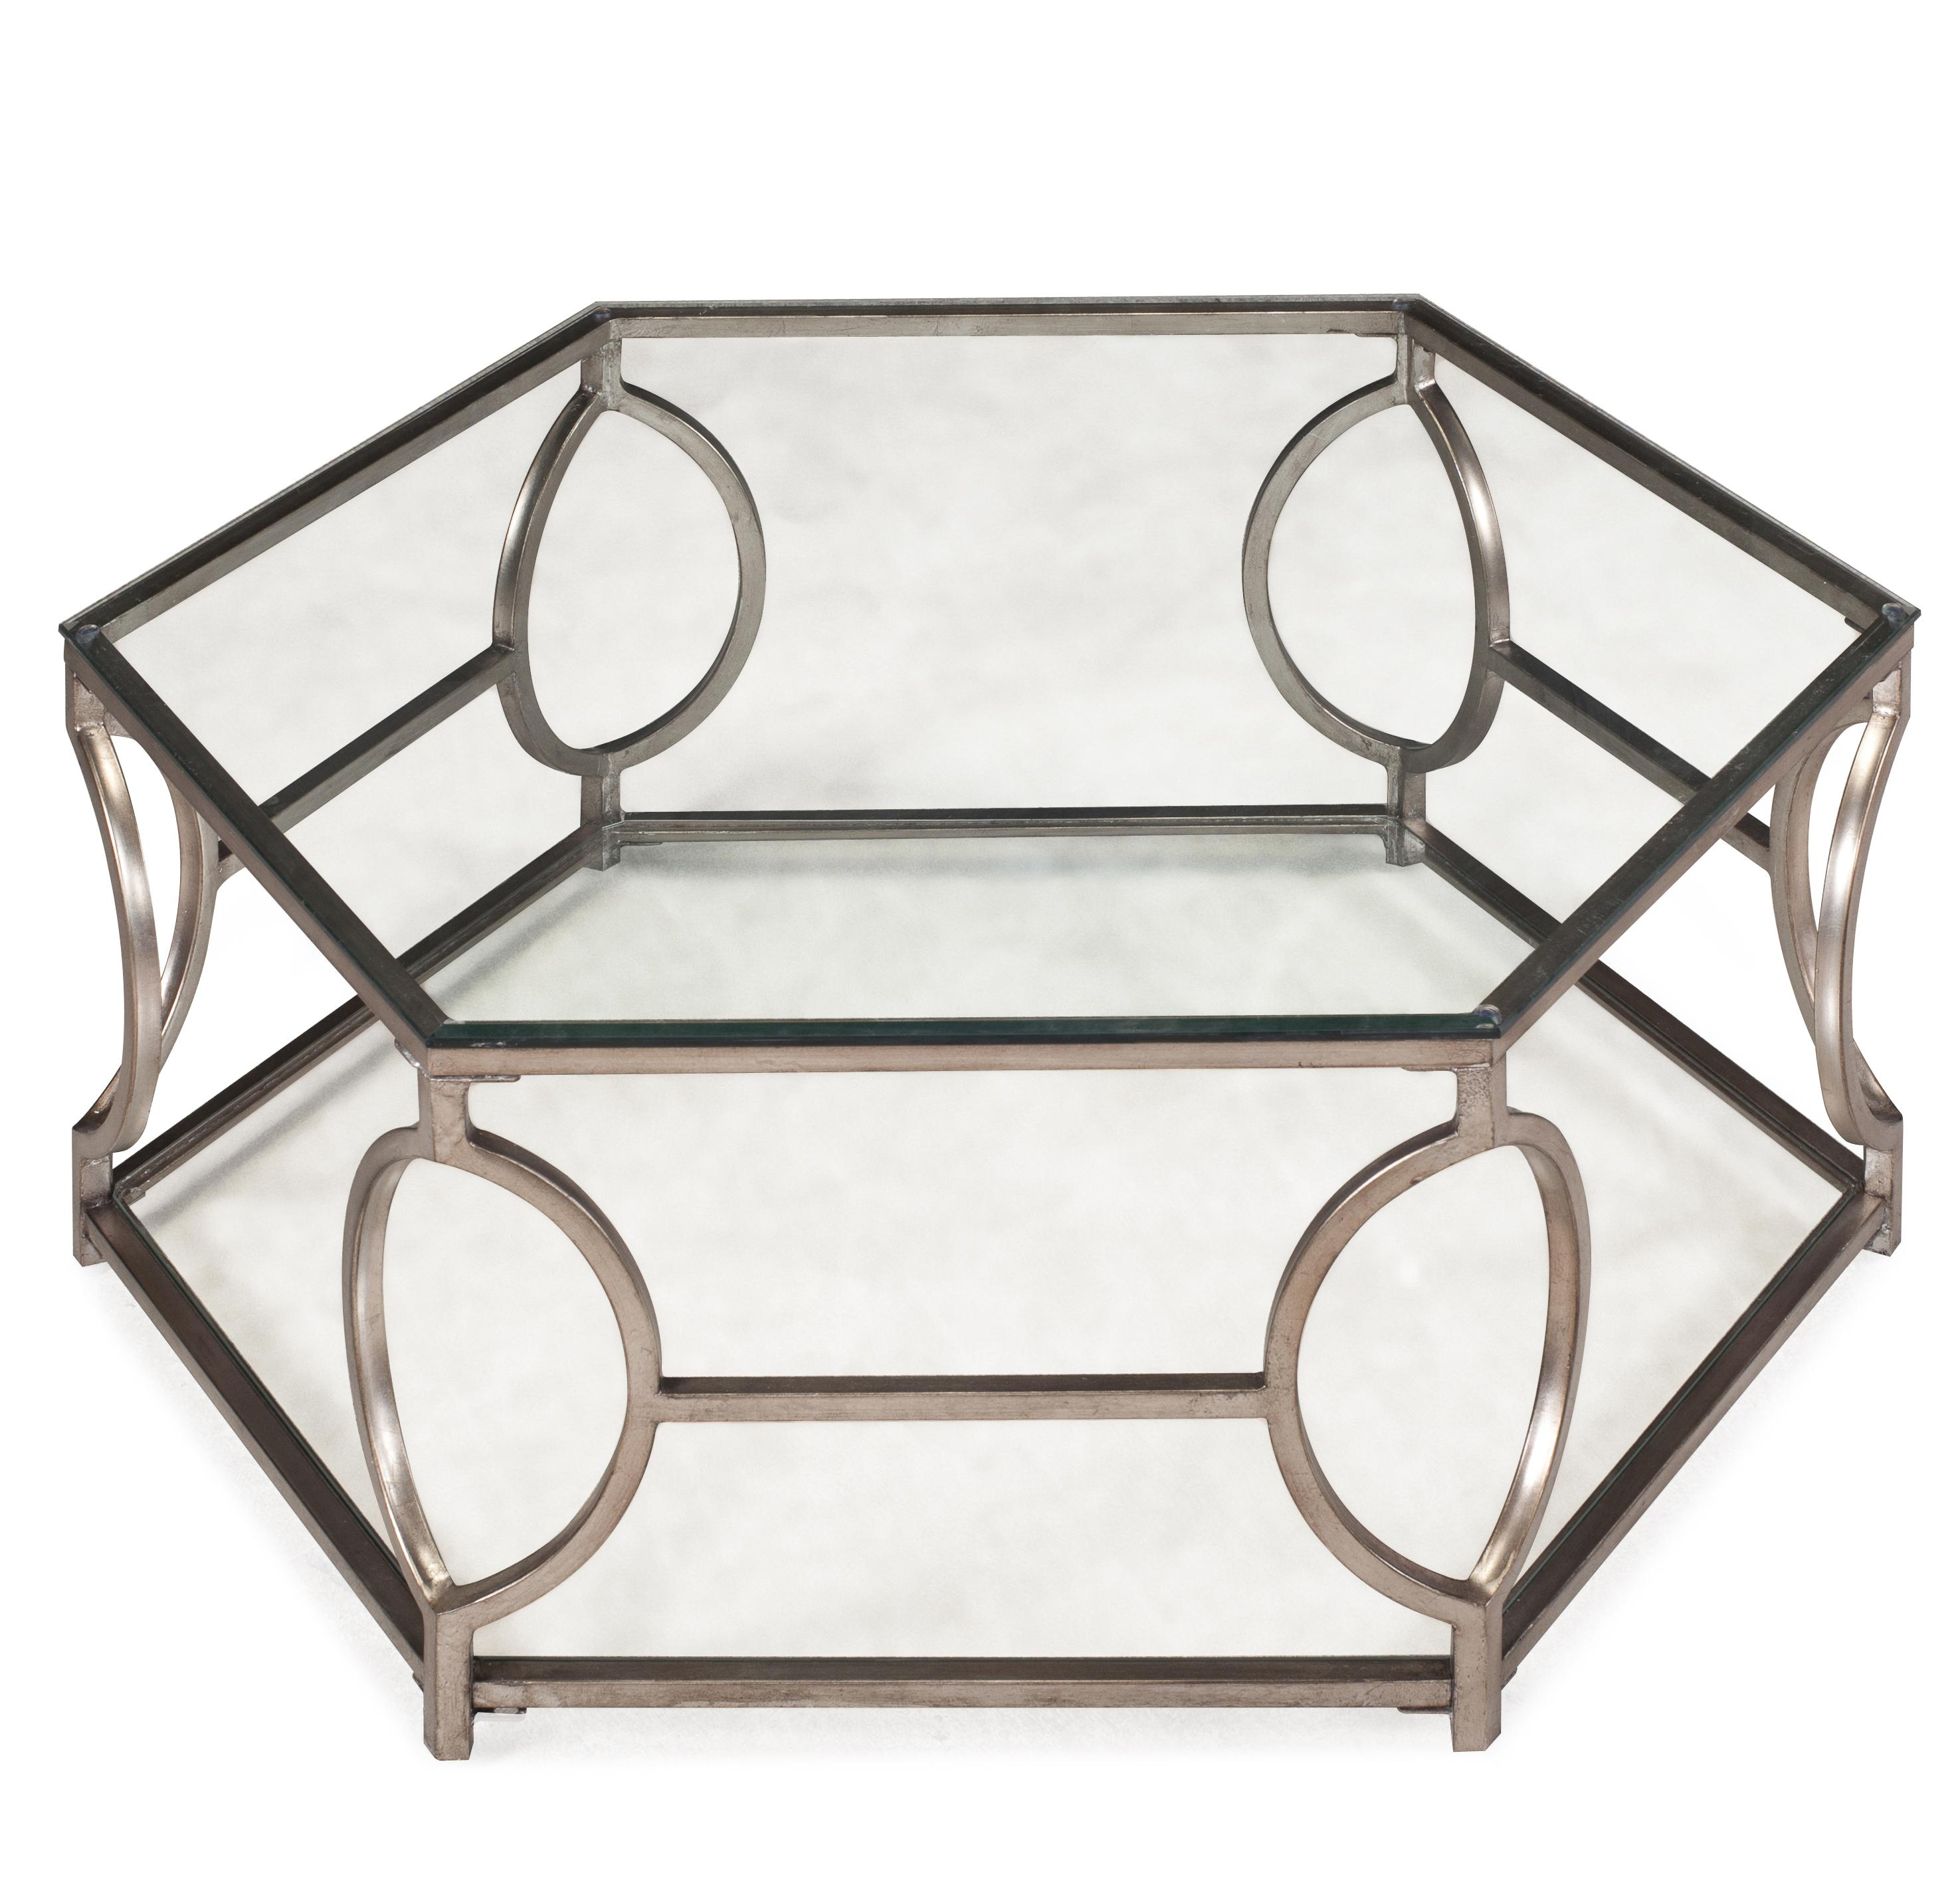 Hexagonal Cocktail Table With Glass Top And Geometric Detail